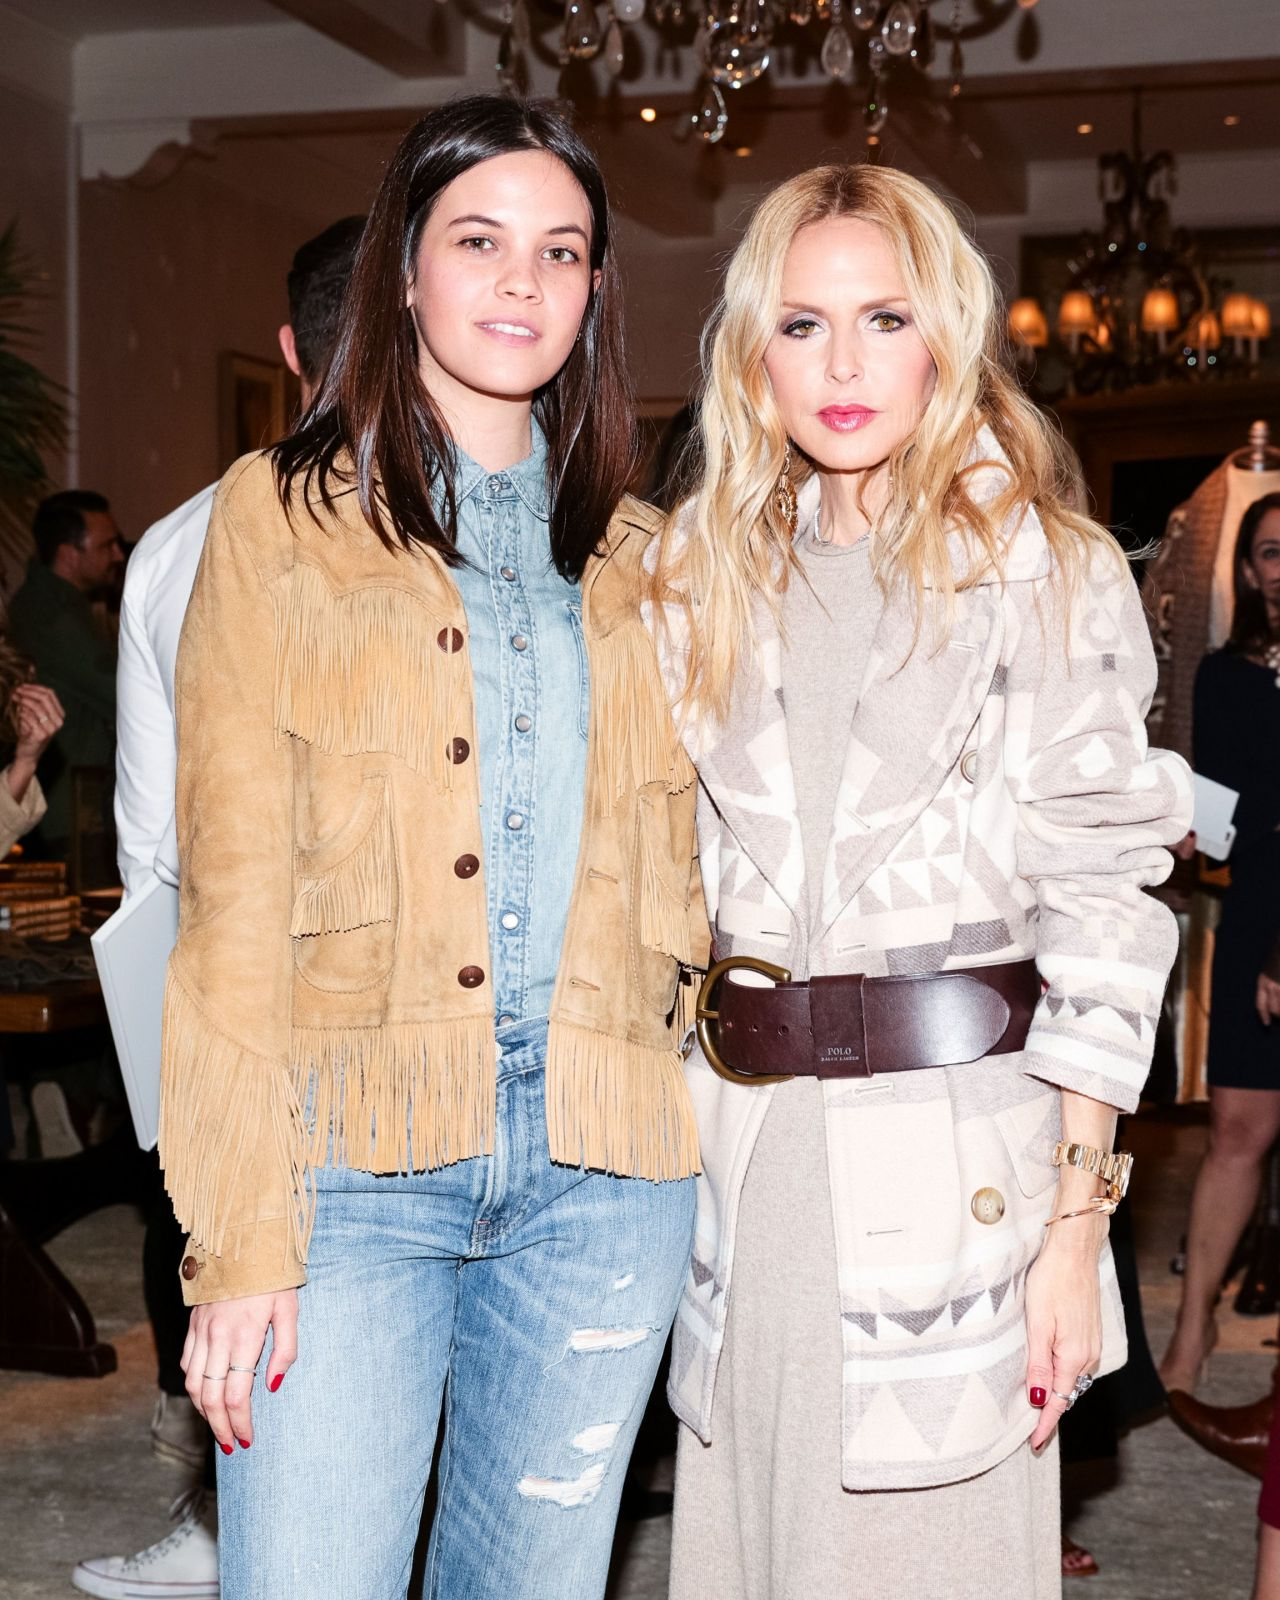 ariel mortman � polo ralph lauren event in la